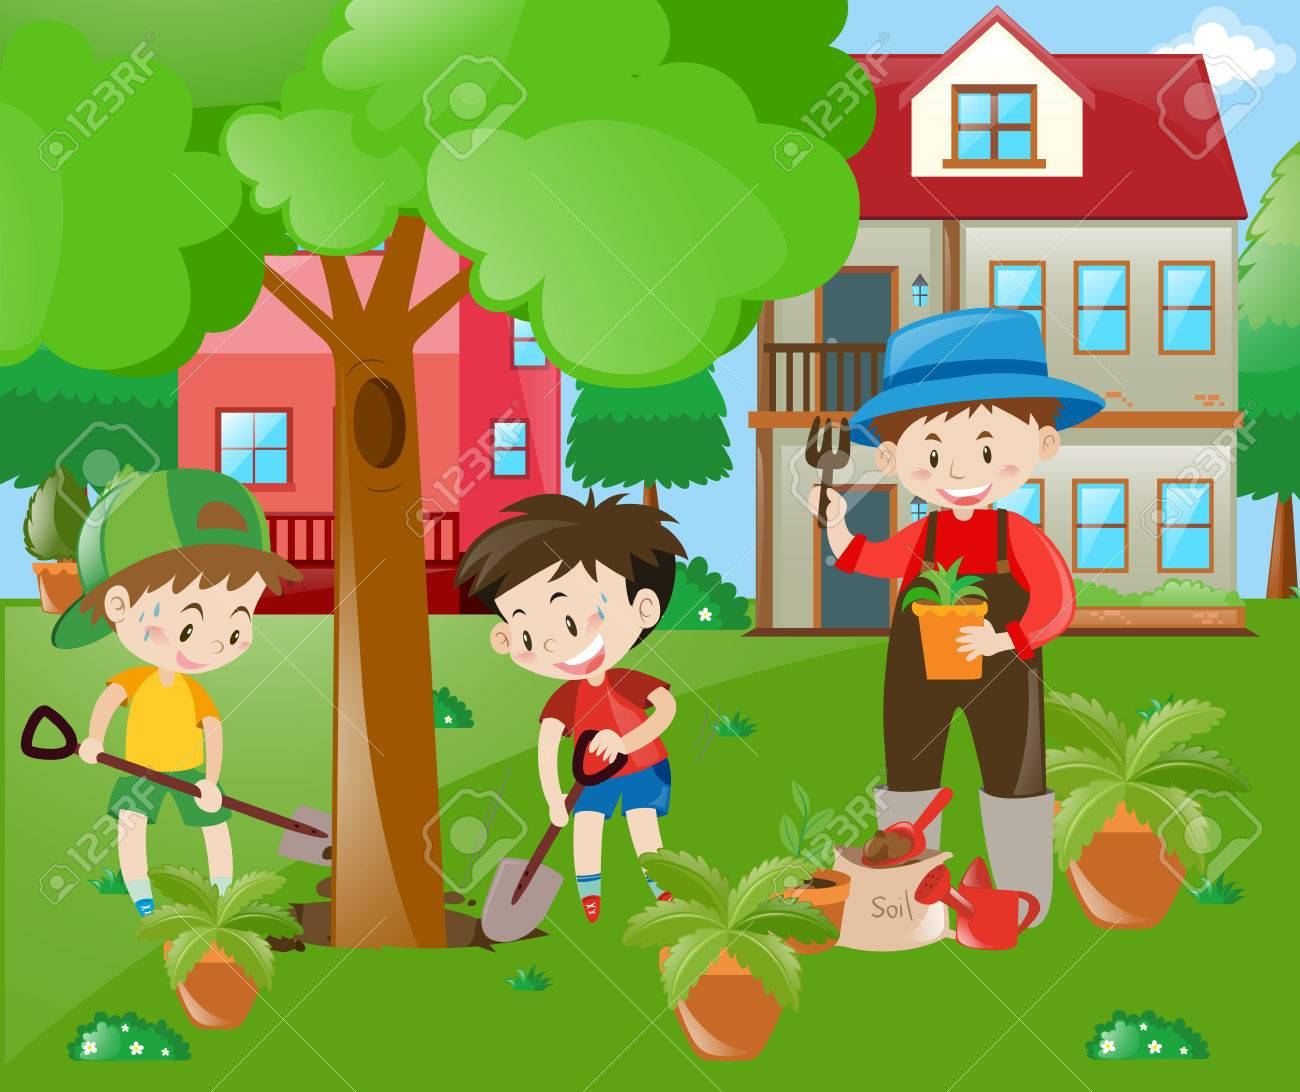 Children Helping Out In The Garden Illustration Stock Vector